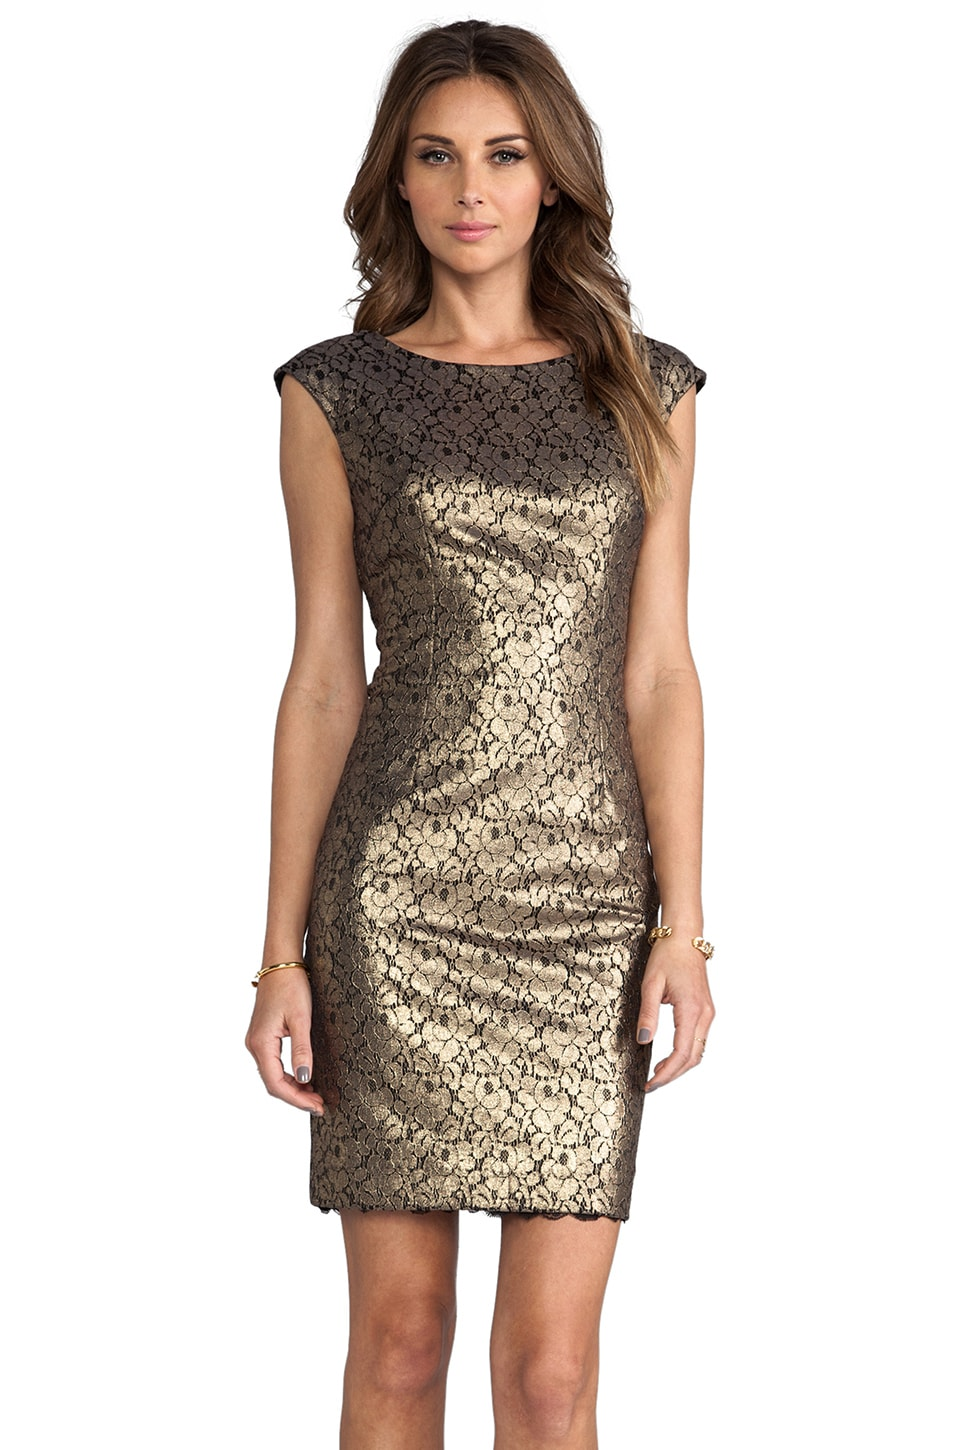 Trina Turk Meadows Dress in Bronze